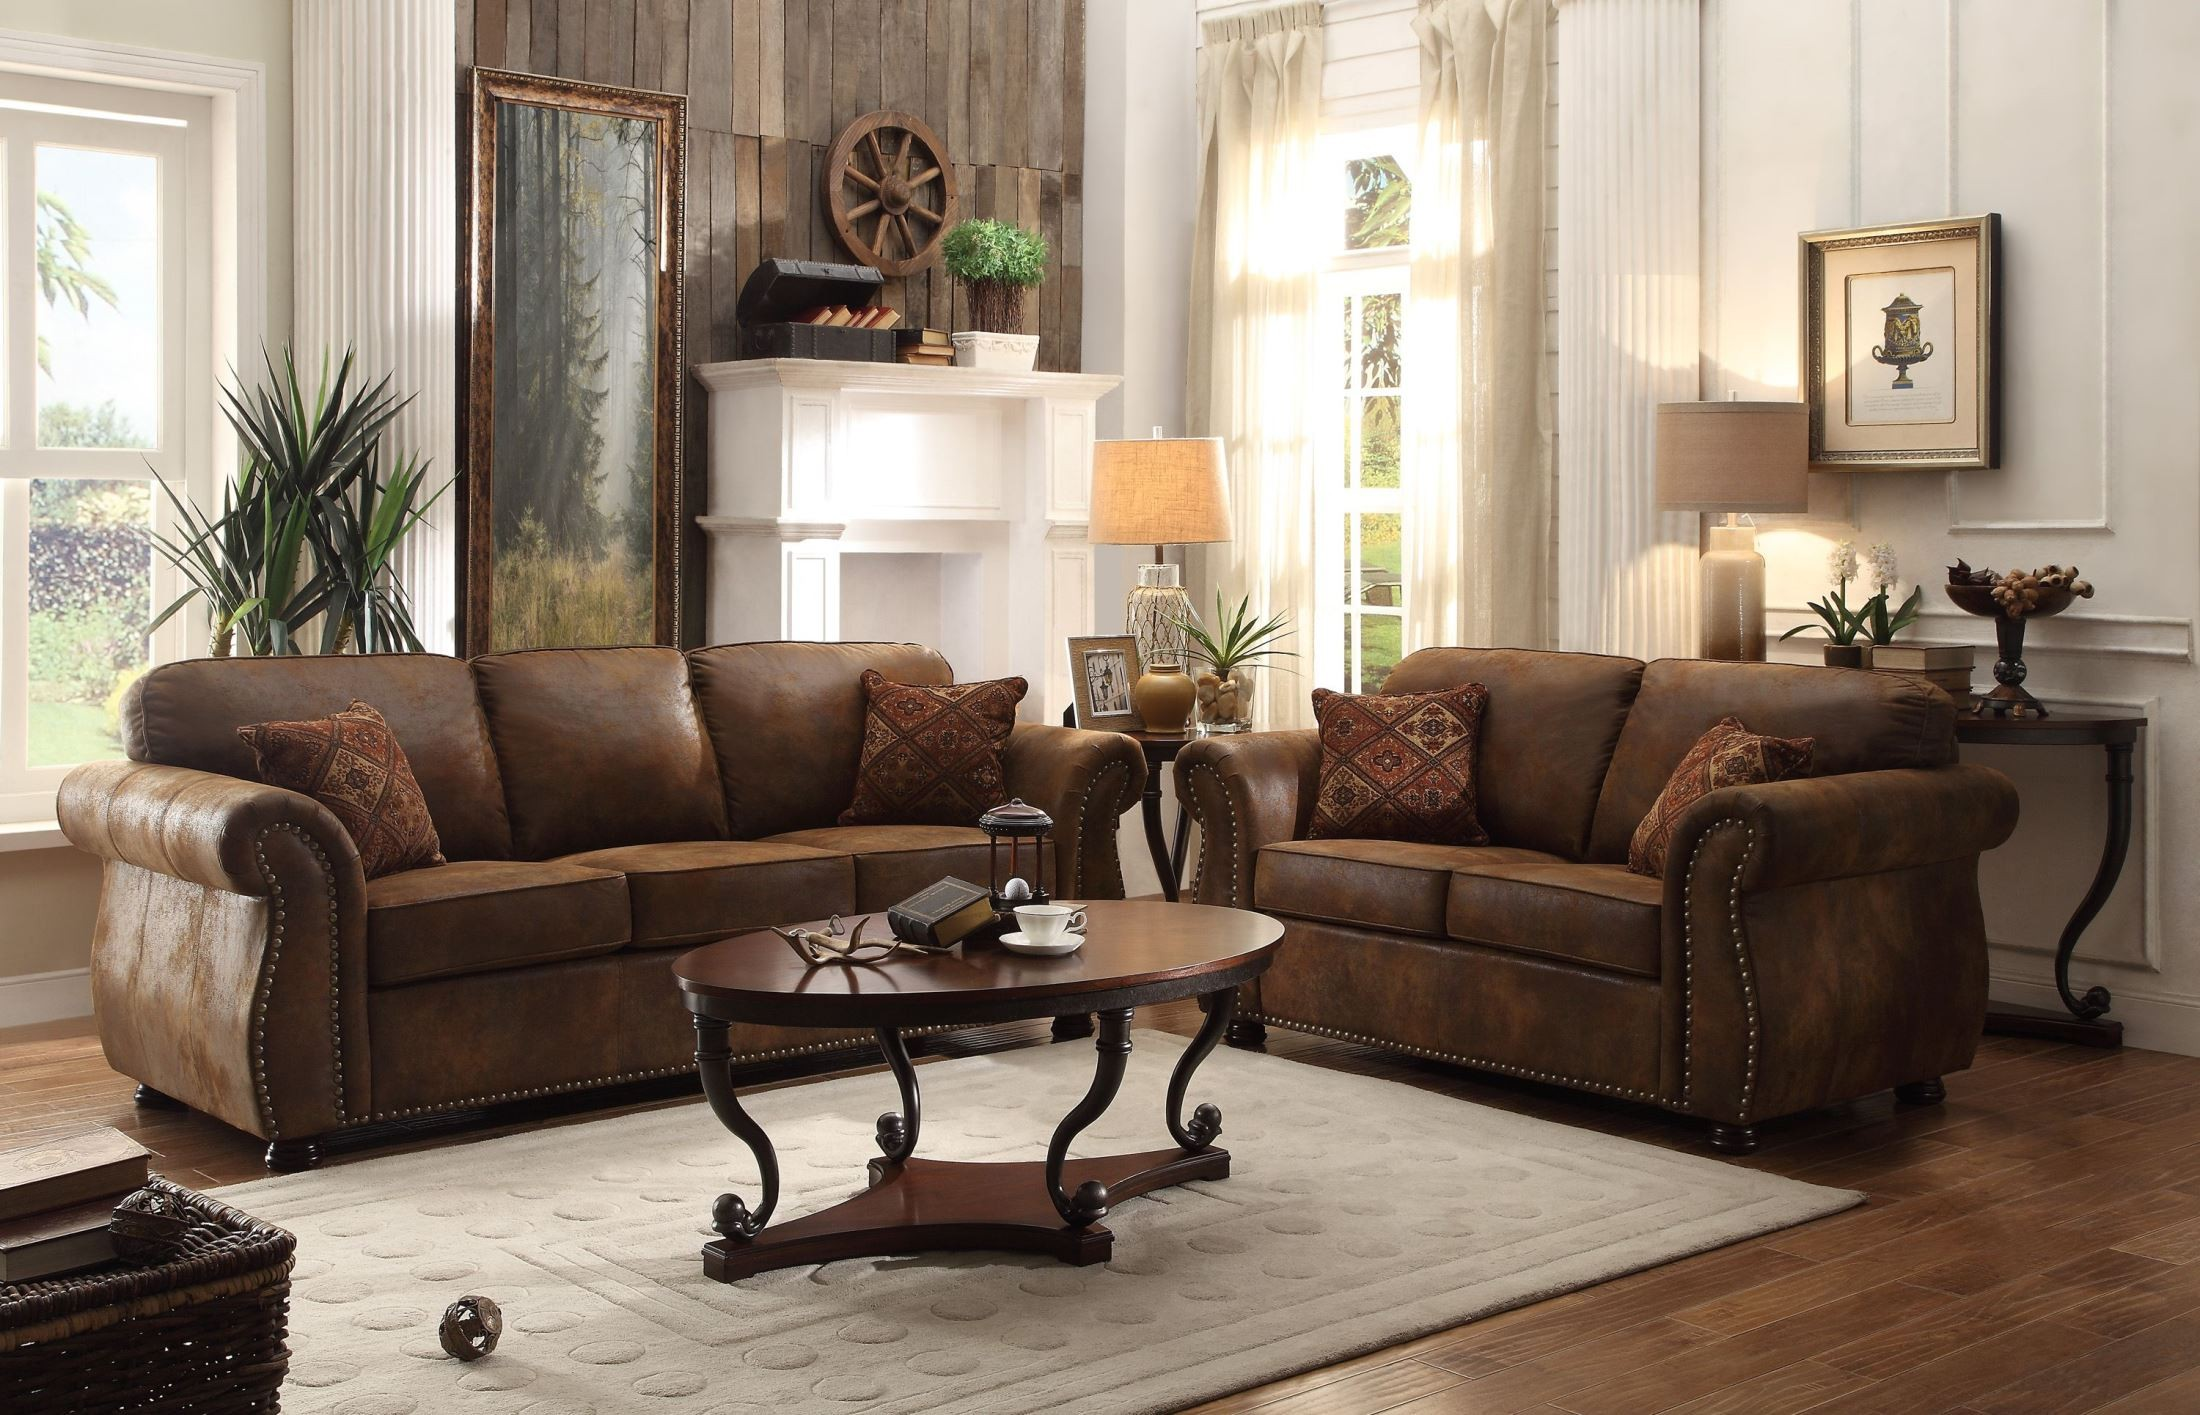 Corvallis brown living room set from homelegance 8405bj 3 for Living room chair set